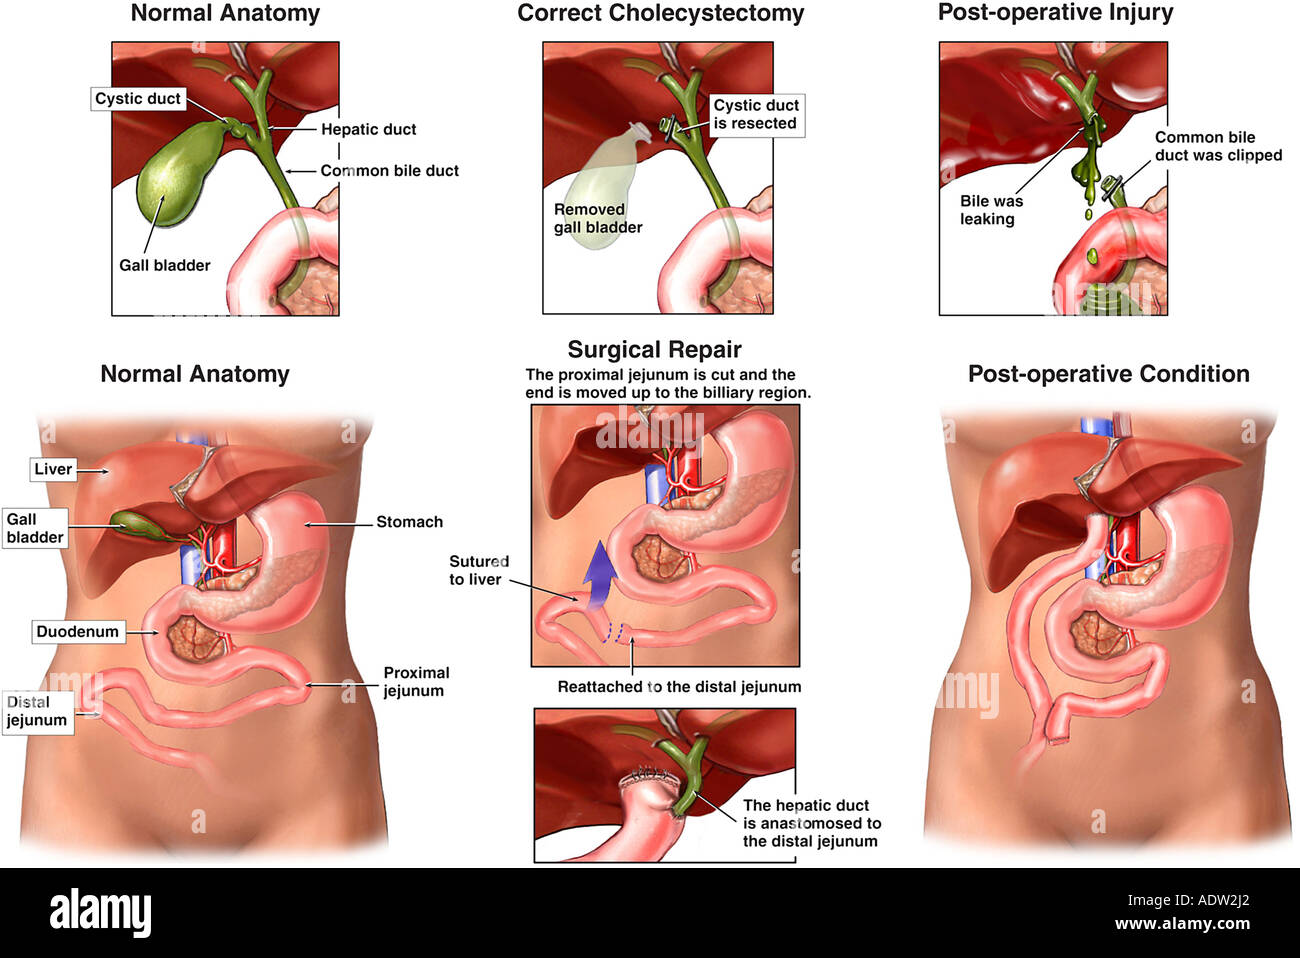 Common Bile Ducts Stock Photos & Common Bile Ducts Stock Images - Alamy